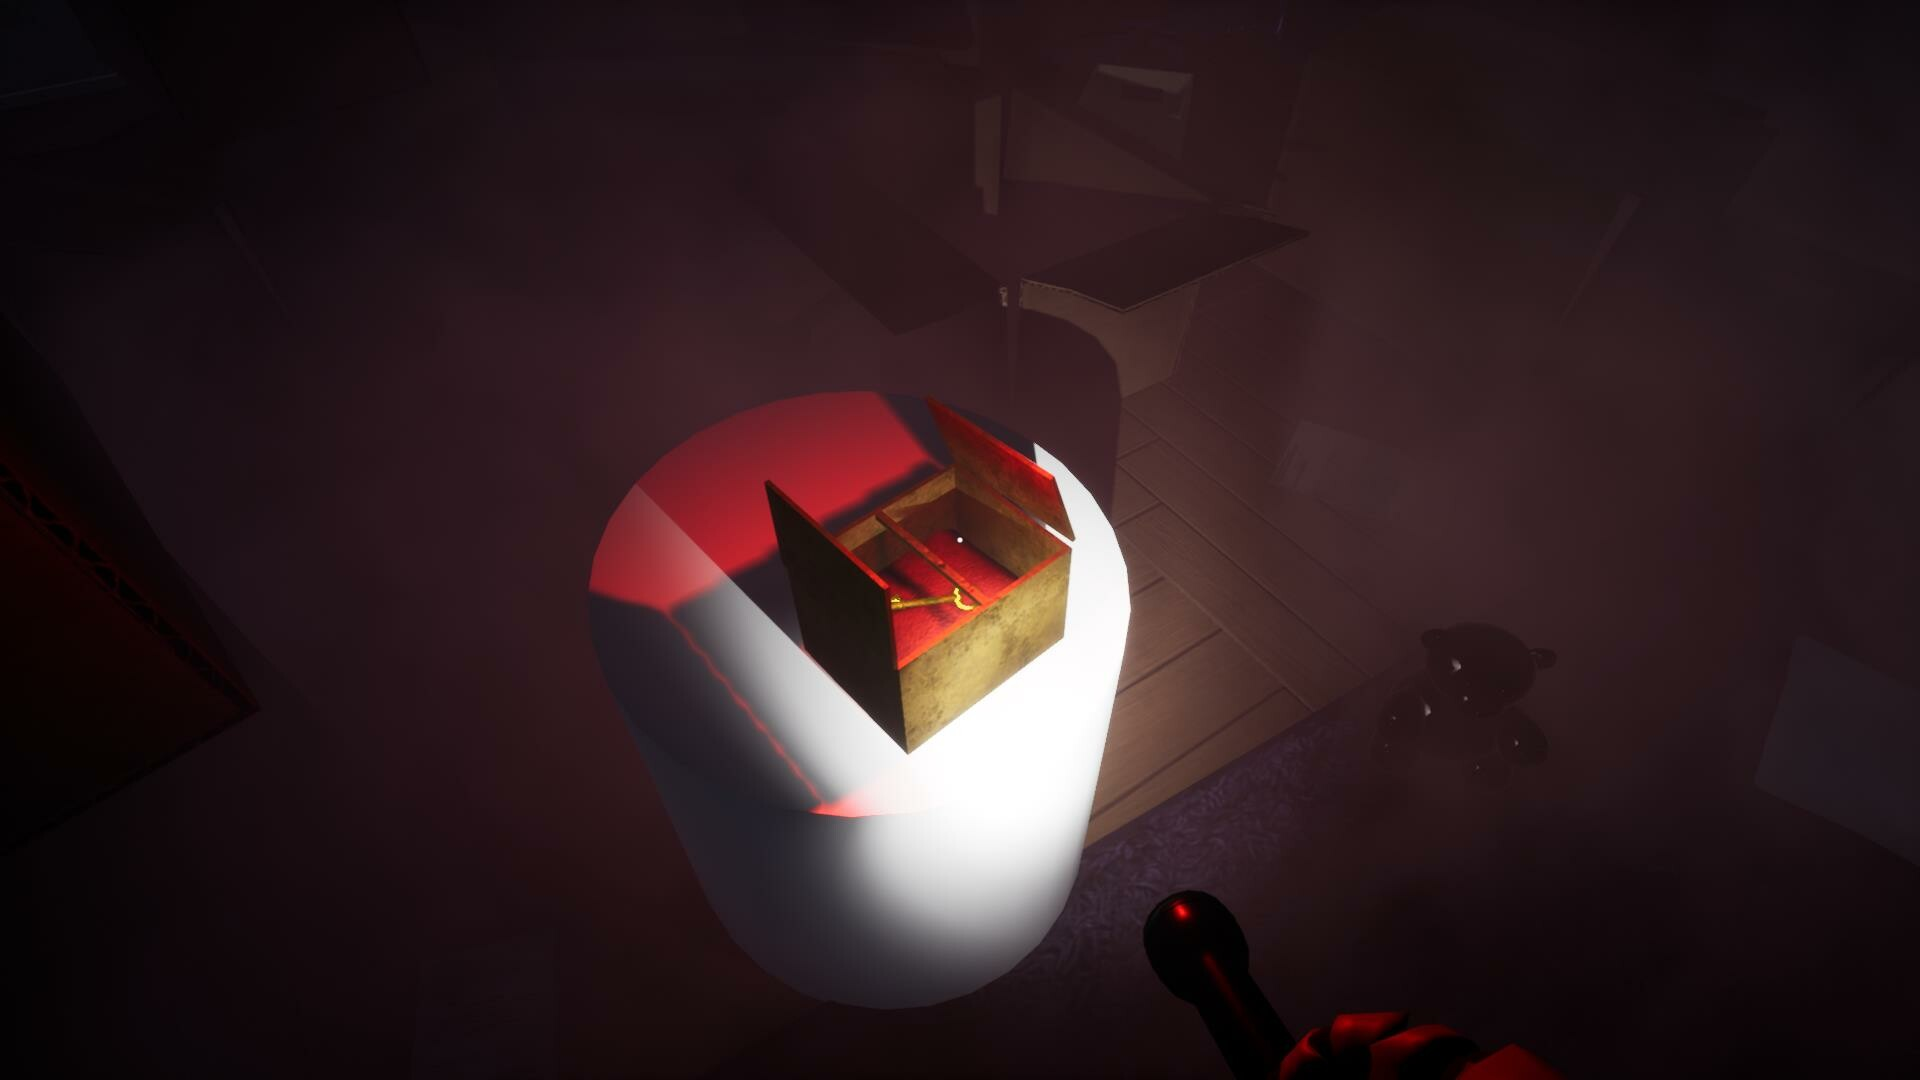 The player obtains the final key in a golden box surrounded by toys